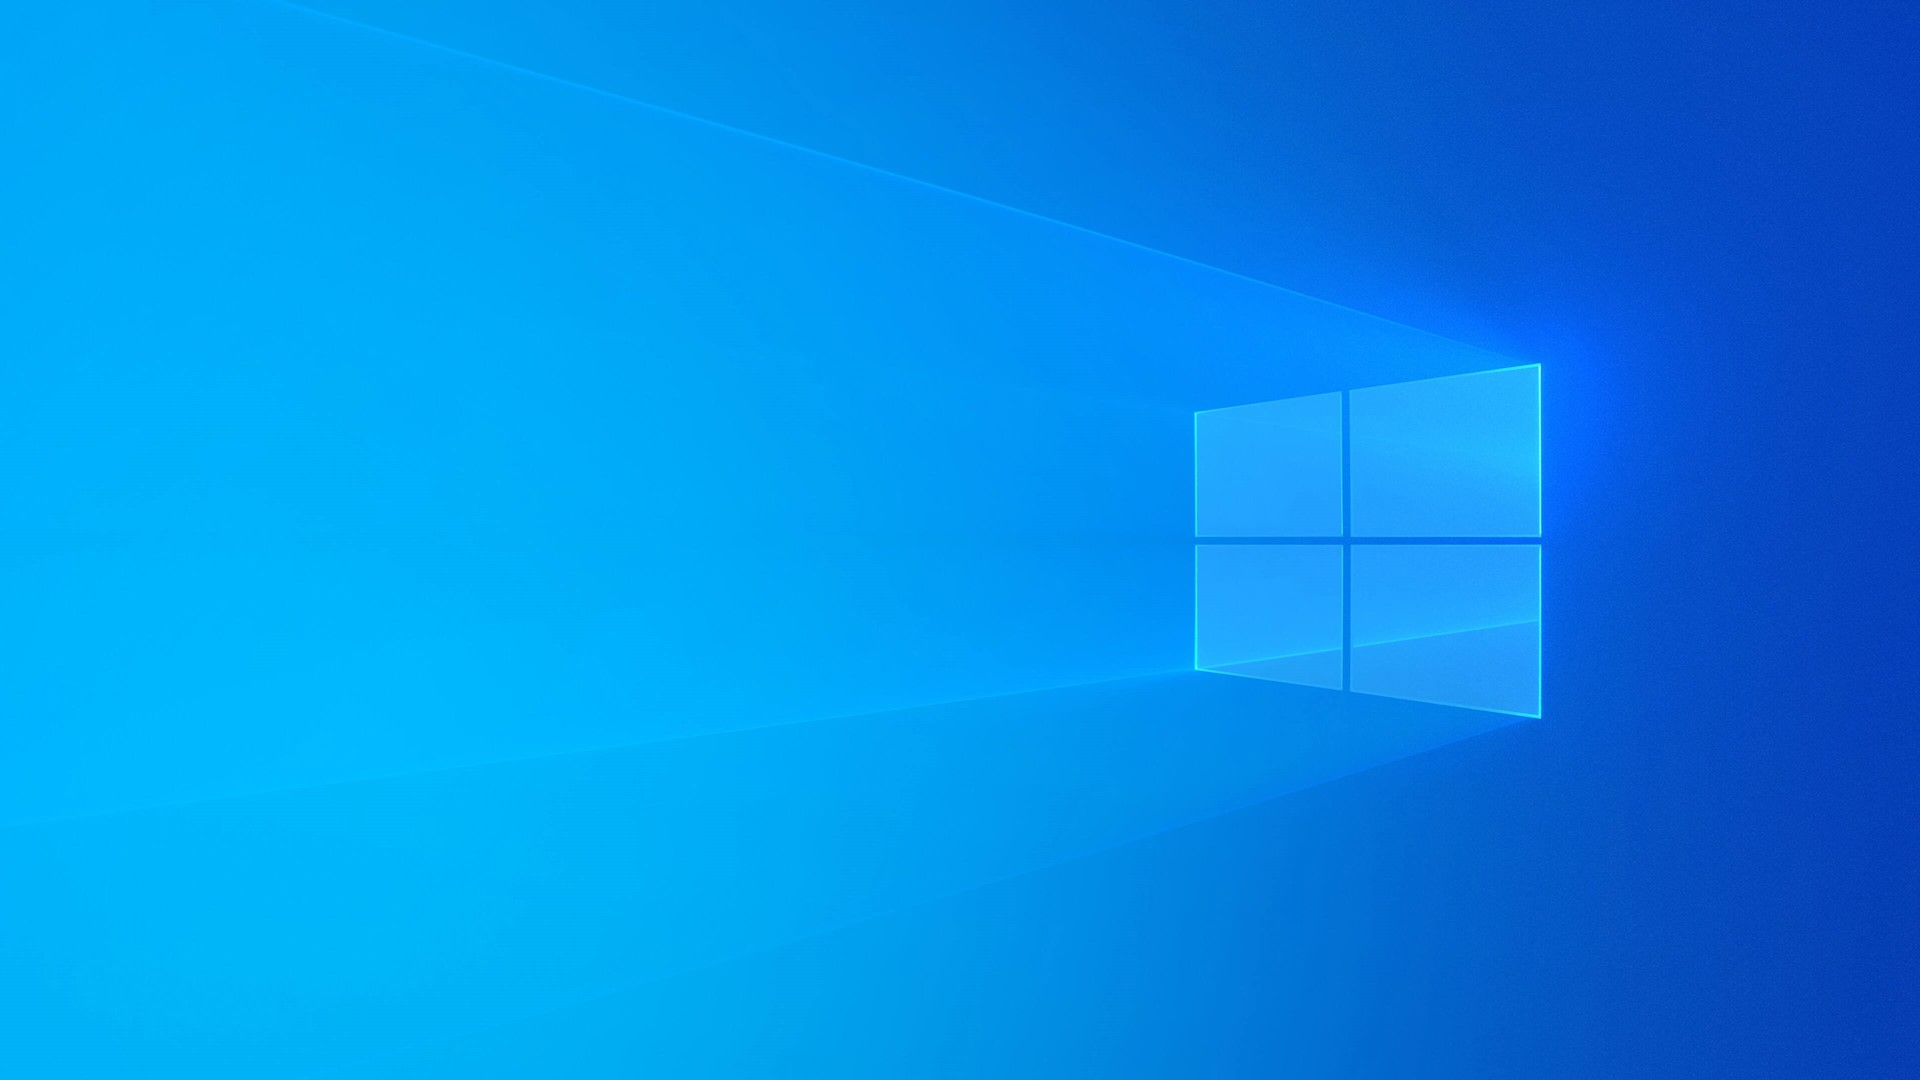 New Default Windows 10 Light Theme Wallpaper Now Available